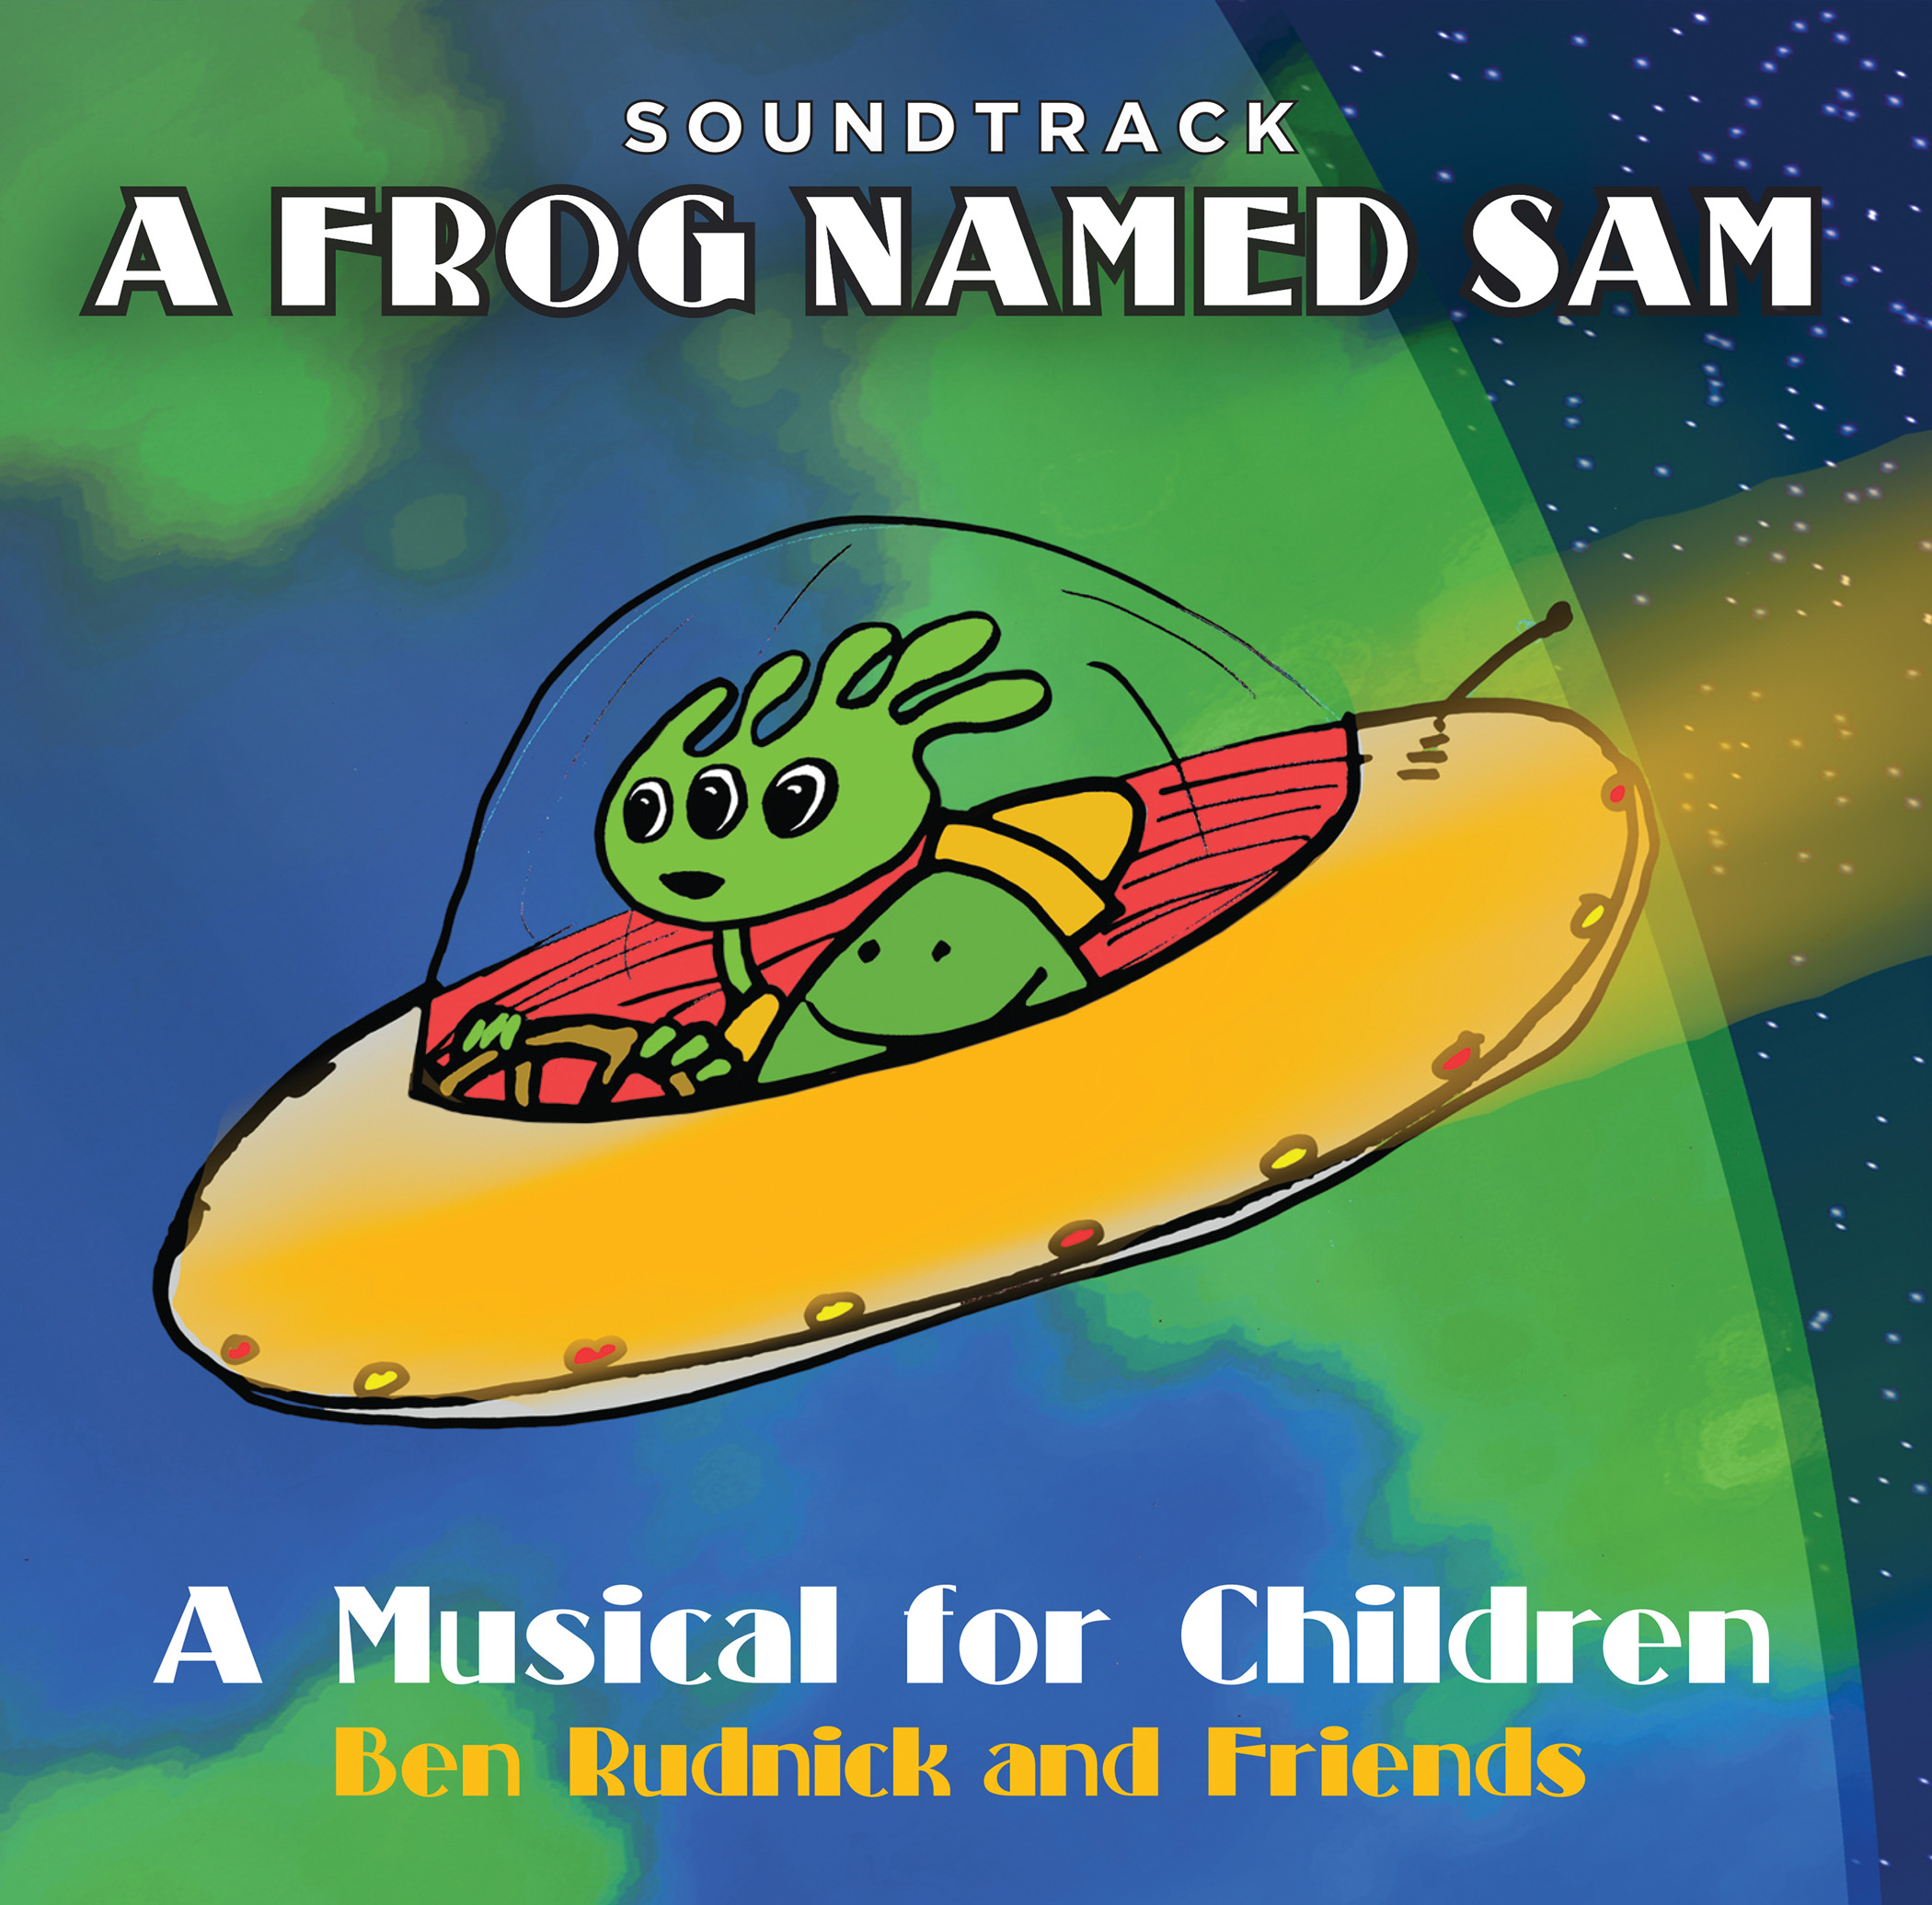 A Frog Named Sam - Soundtrack for the Play